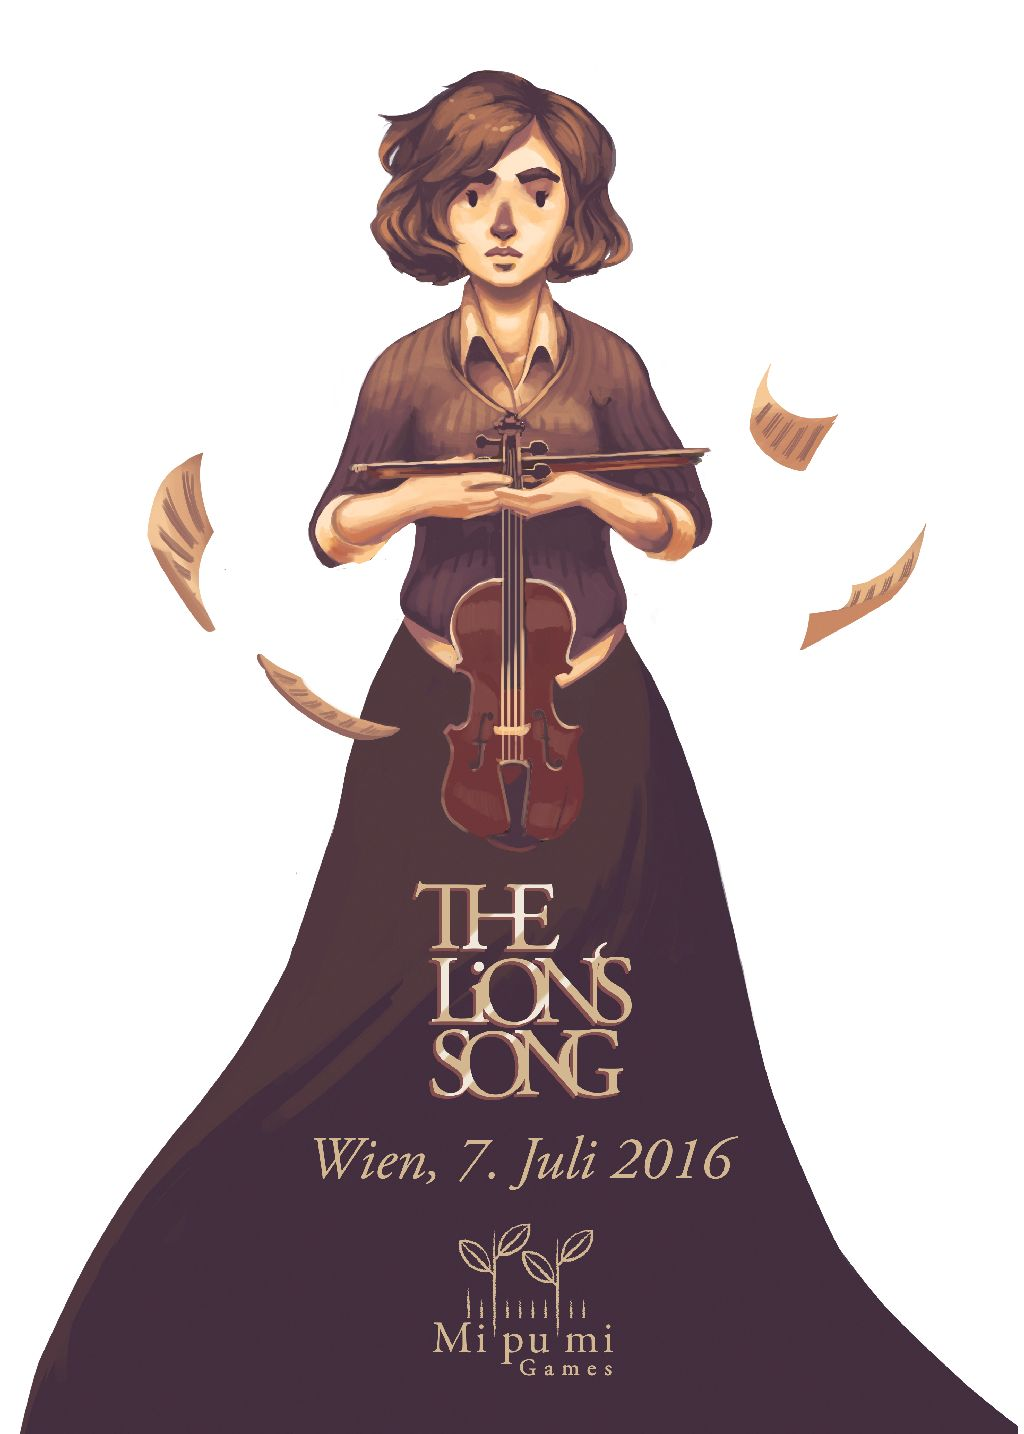 Gamescom 2016 - The Lion's Song is shaping up to be the best non-Telltale Telltale game yet